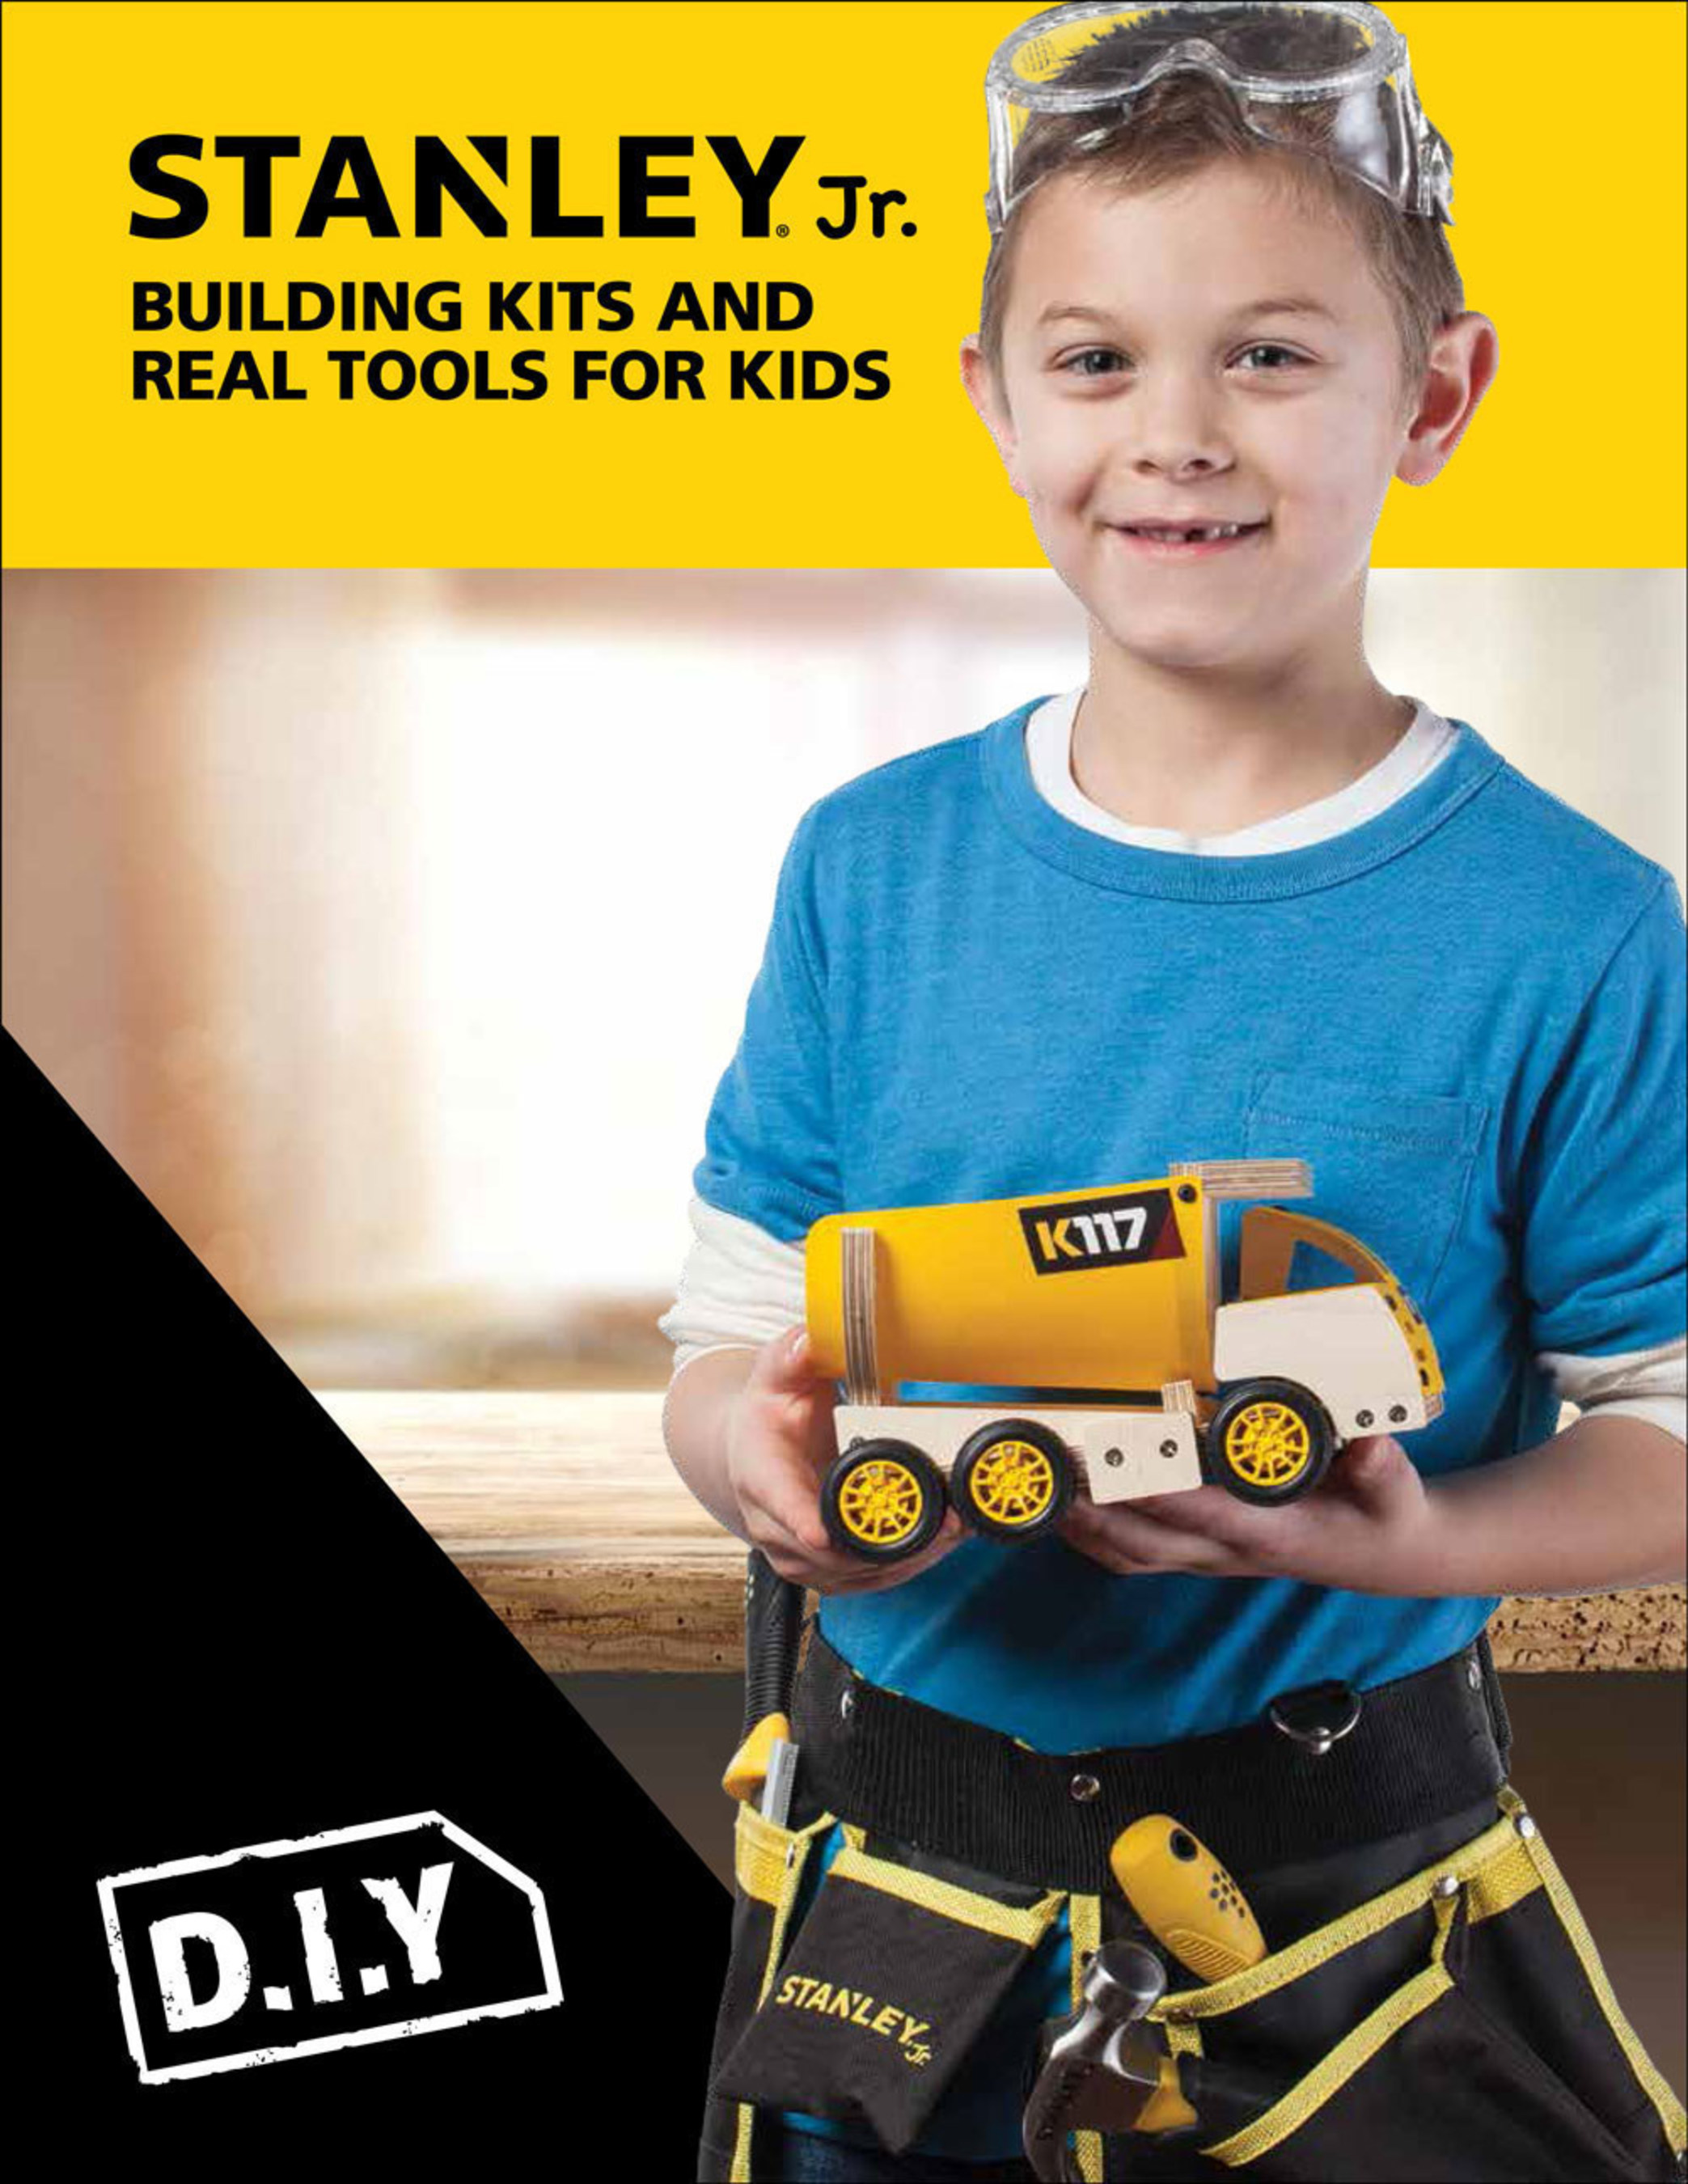 Reeves International Introduces STANLEY® Jr.  DIY Wood Craft & Tool Sets for Kids!